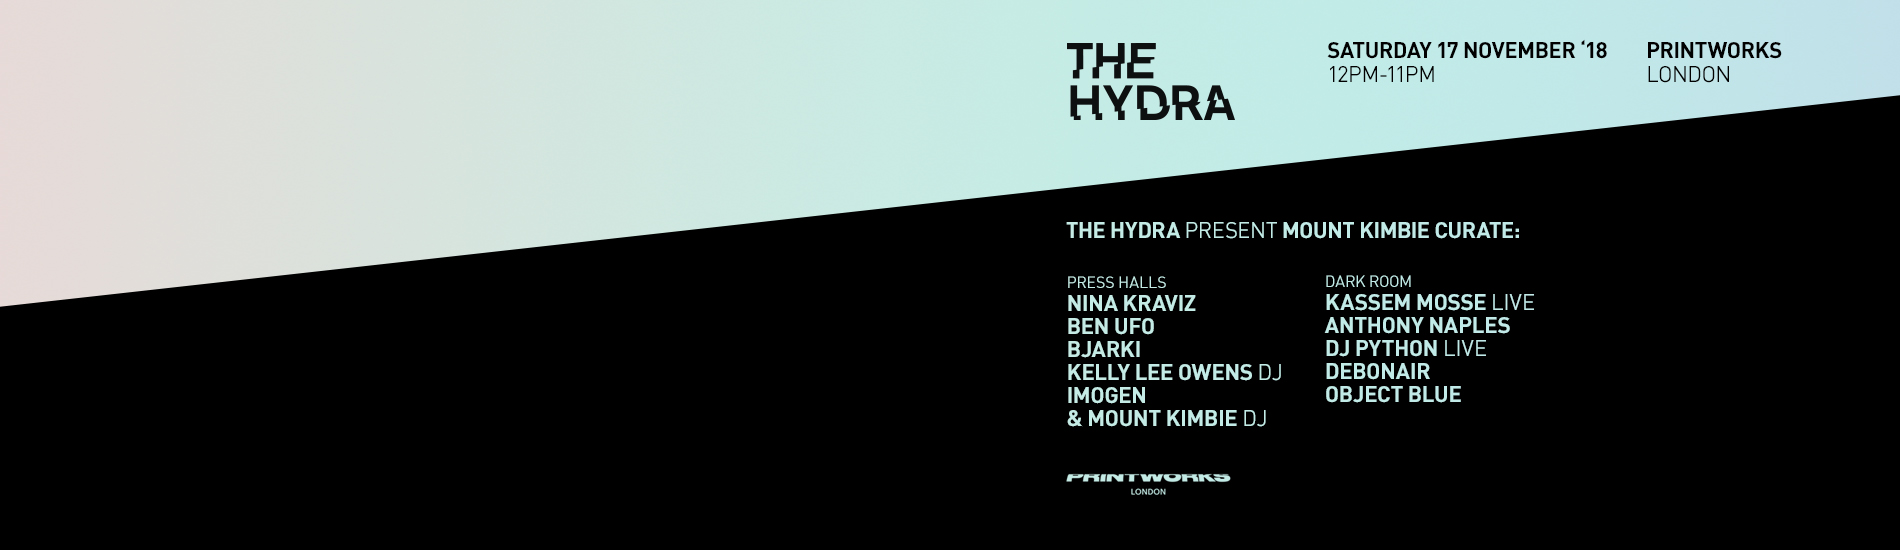 The Hydra present Mount Kimbie Curate  with Nina Kraviz, Ben UFO & More, 17th November 2018